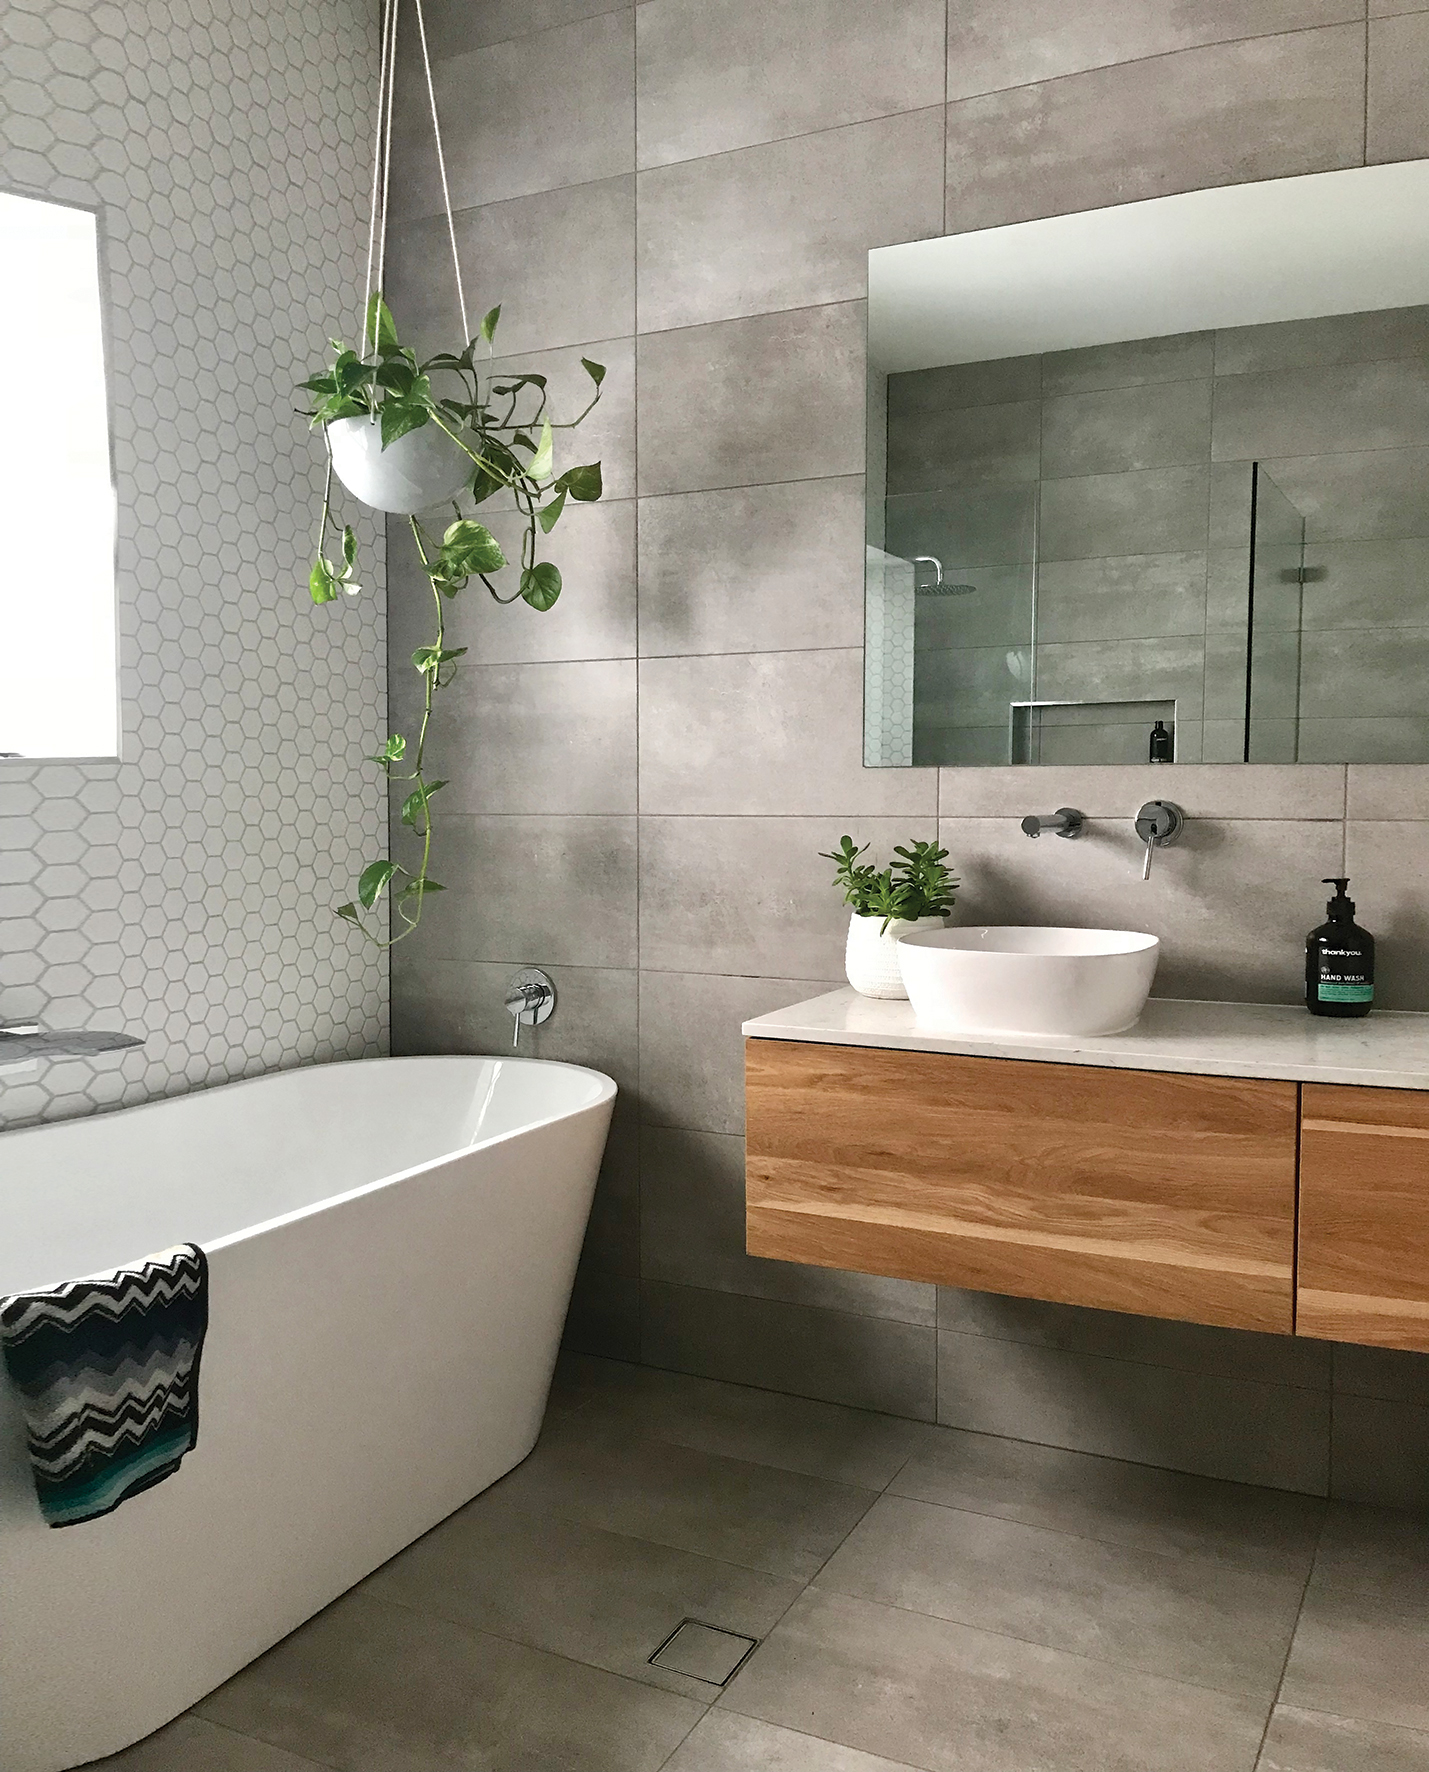 bathroom with vanity mirror and bathtub with gray tile